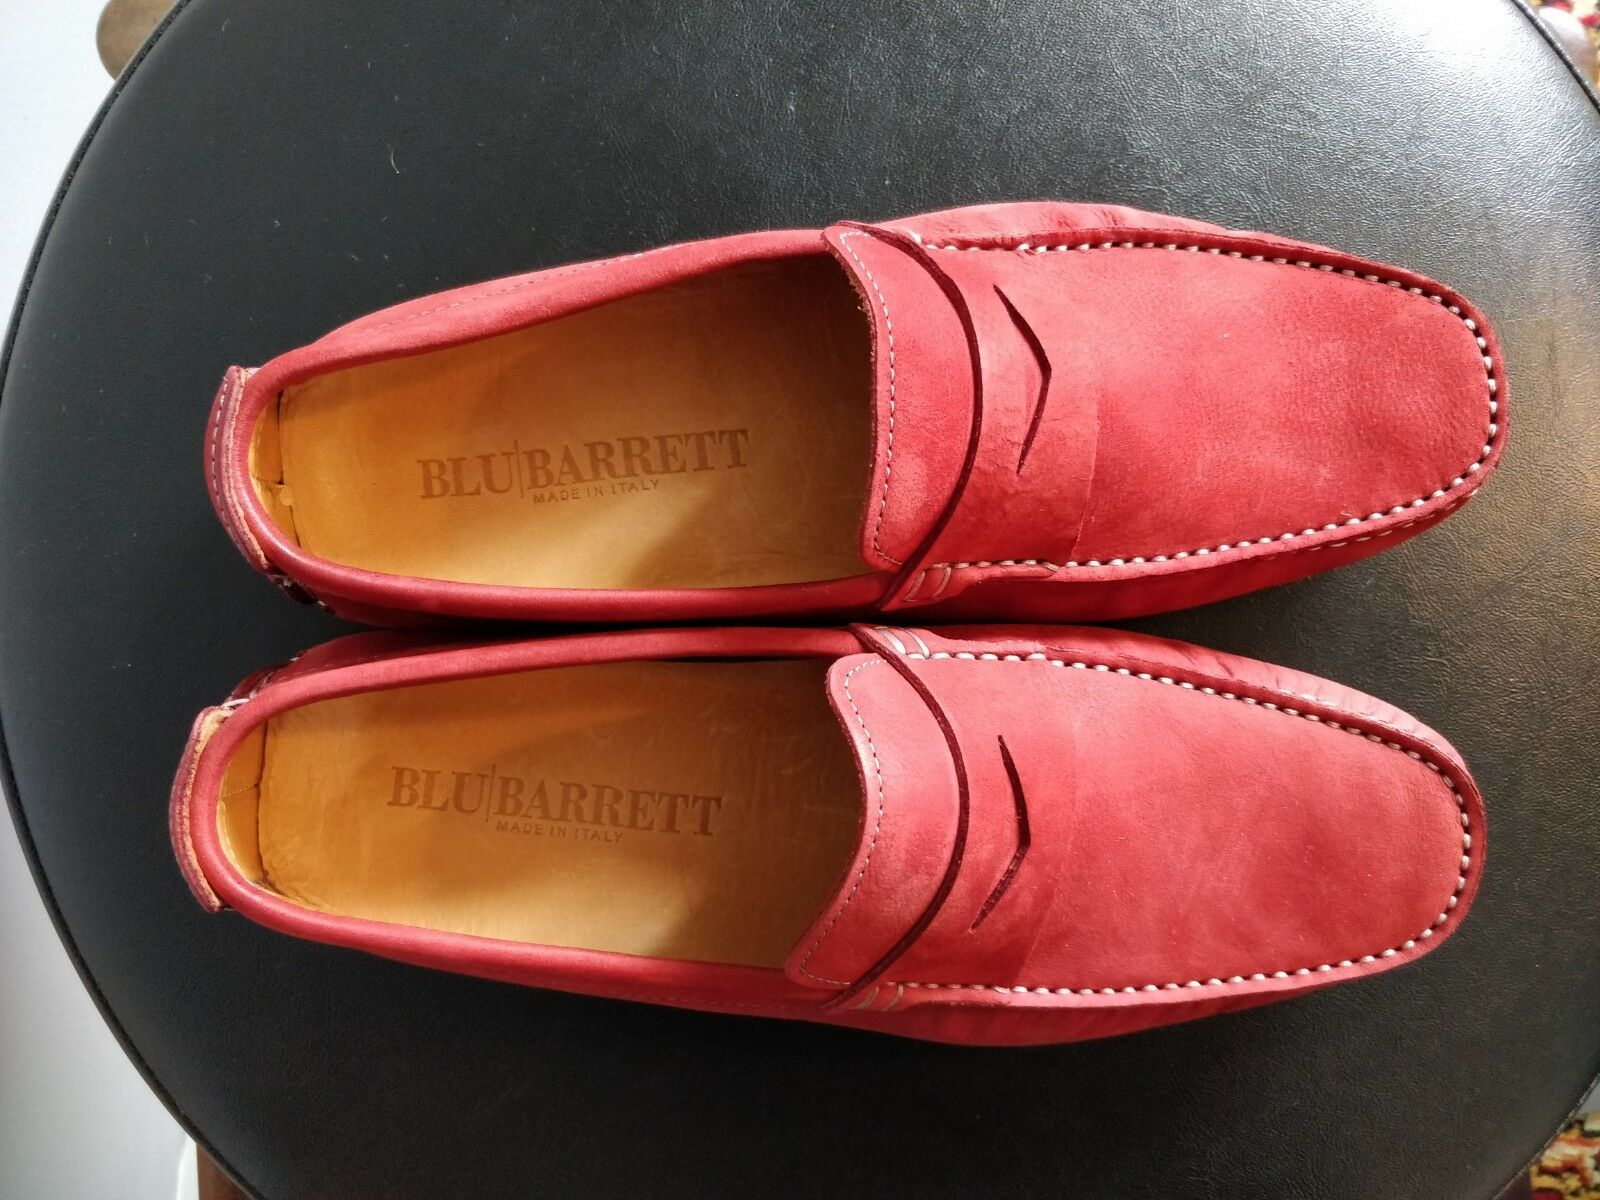 Blu Barrett Casual Stylish Suede ROT Burgundy Casual Barrett Summer Loafers Moccasins 91c4cd